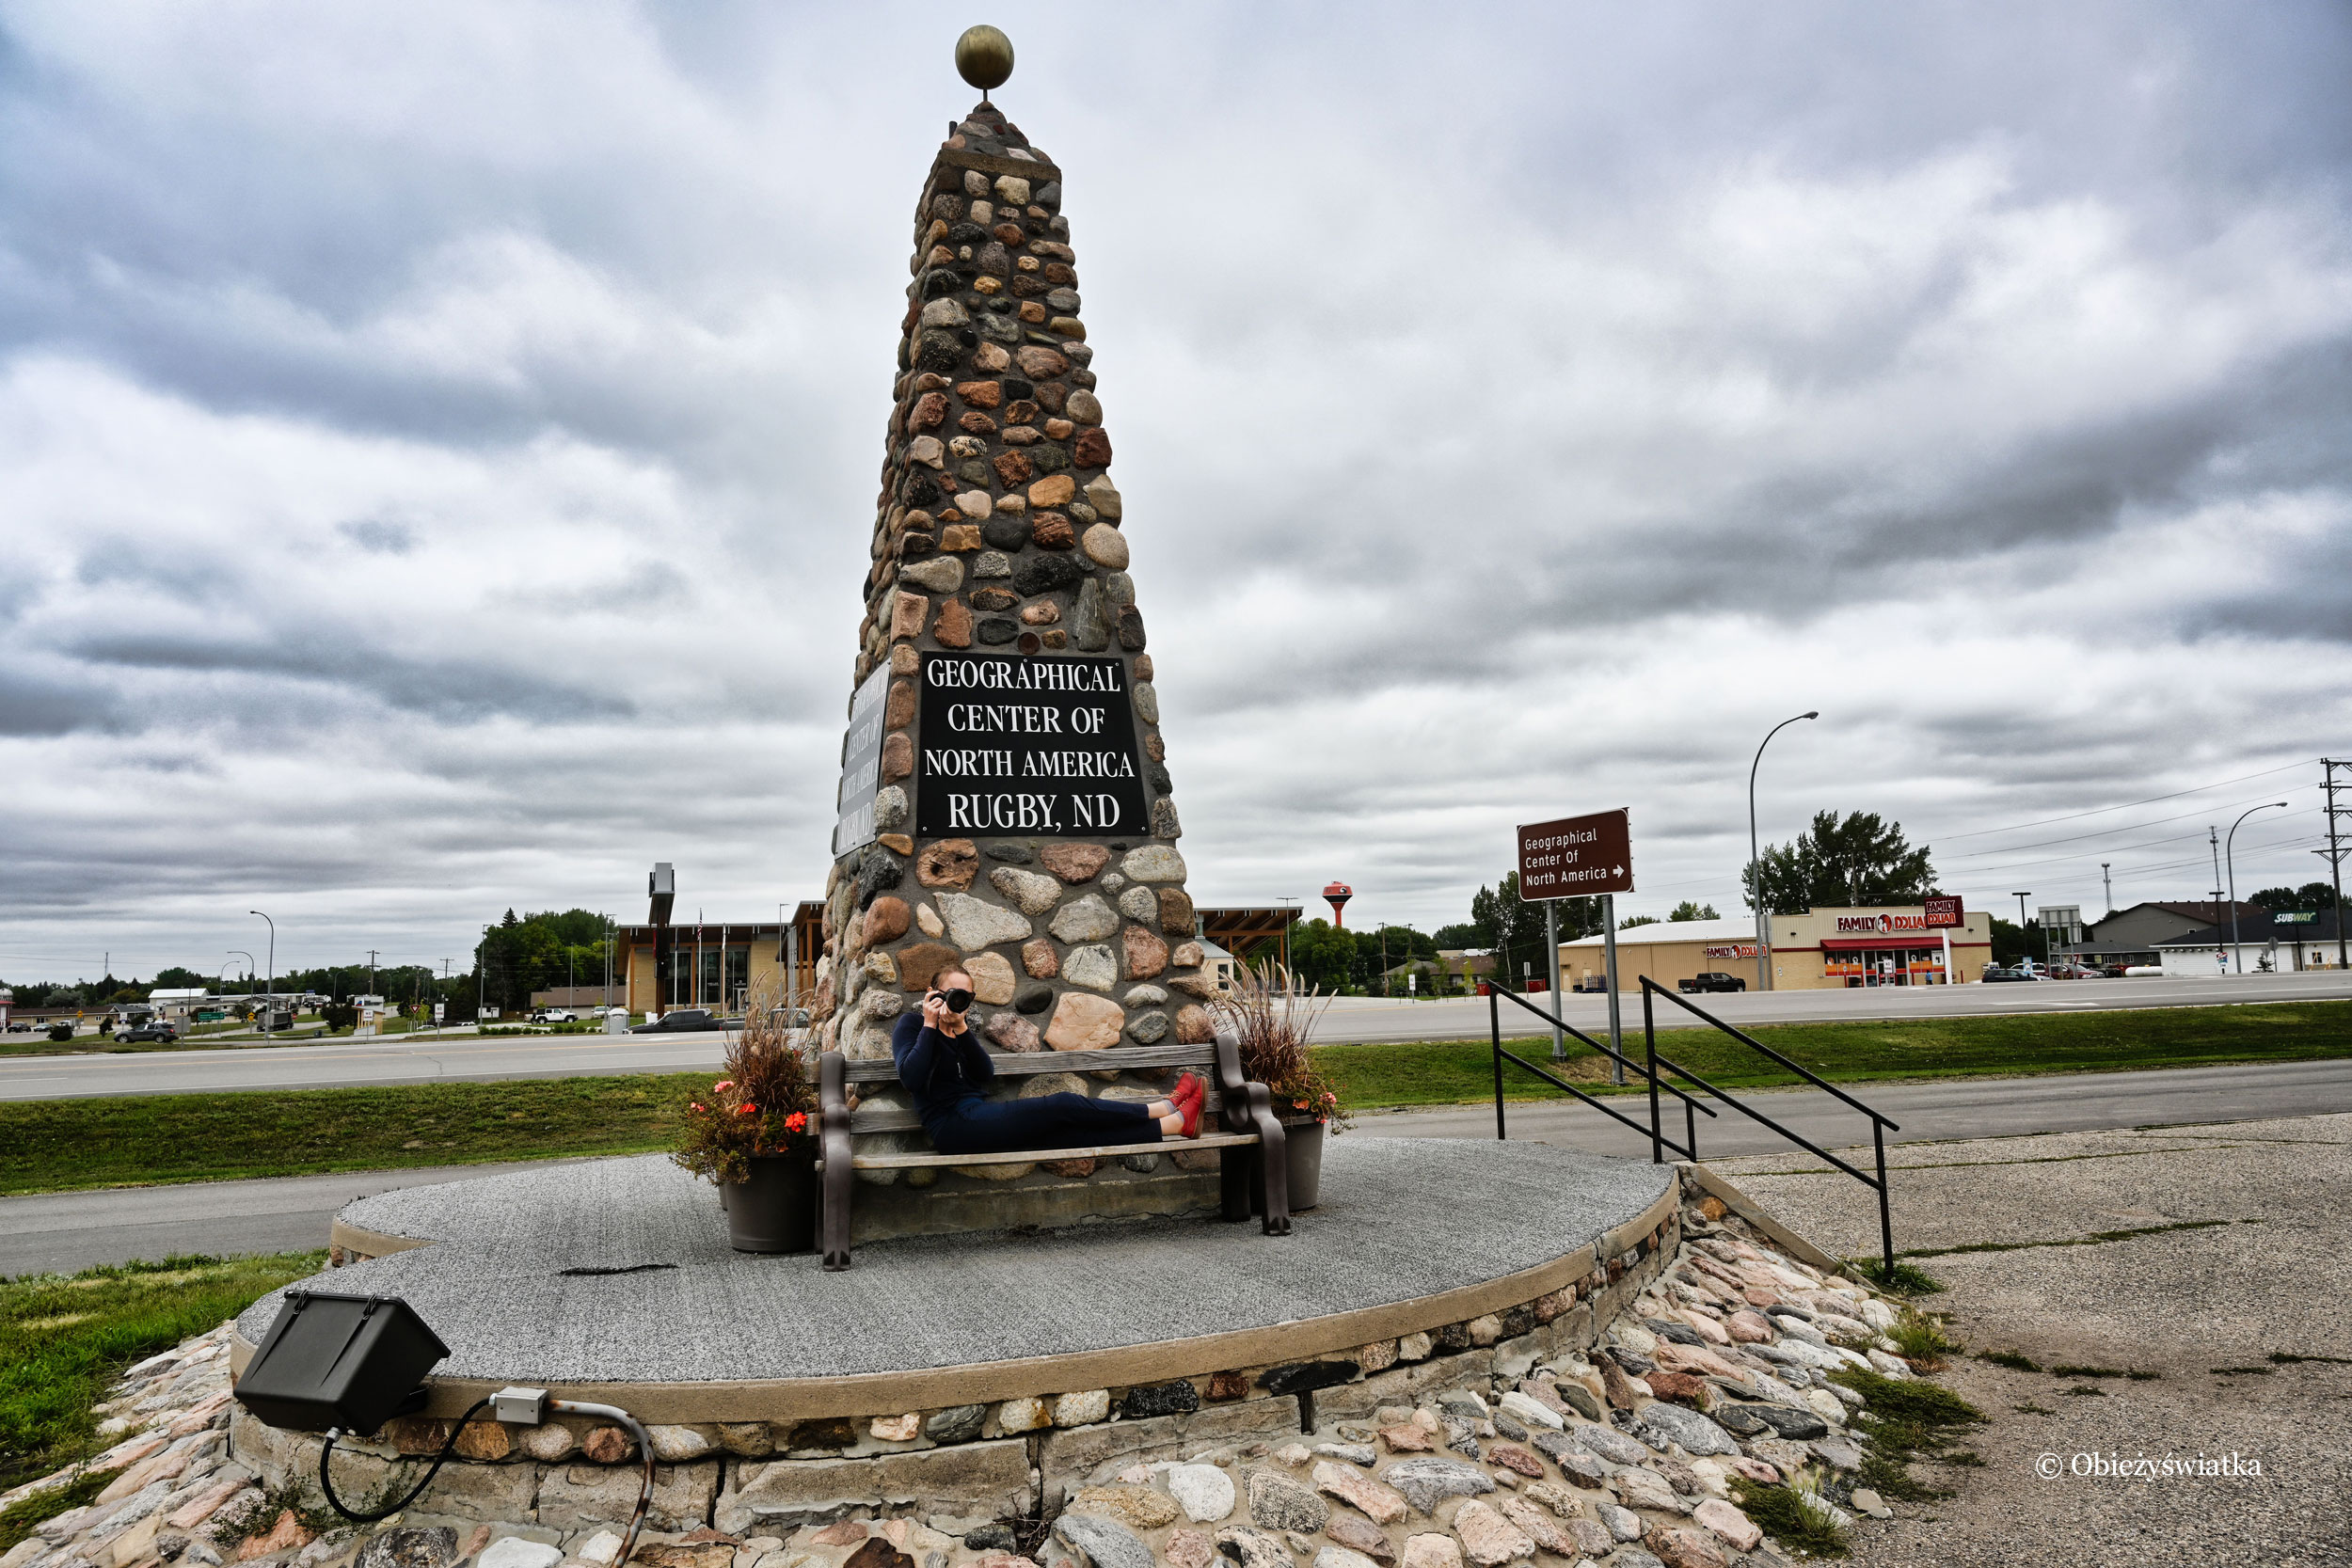 Geographical Center of North America in Rugby, ND